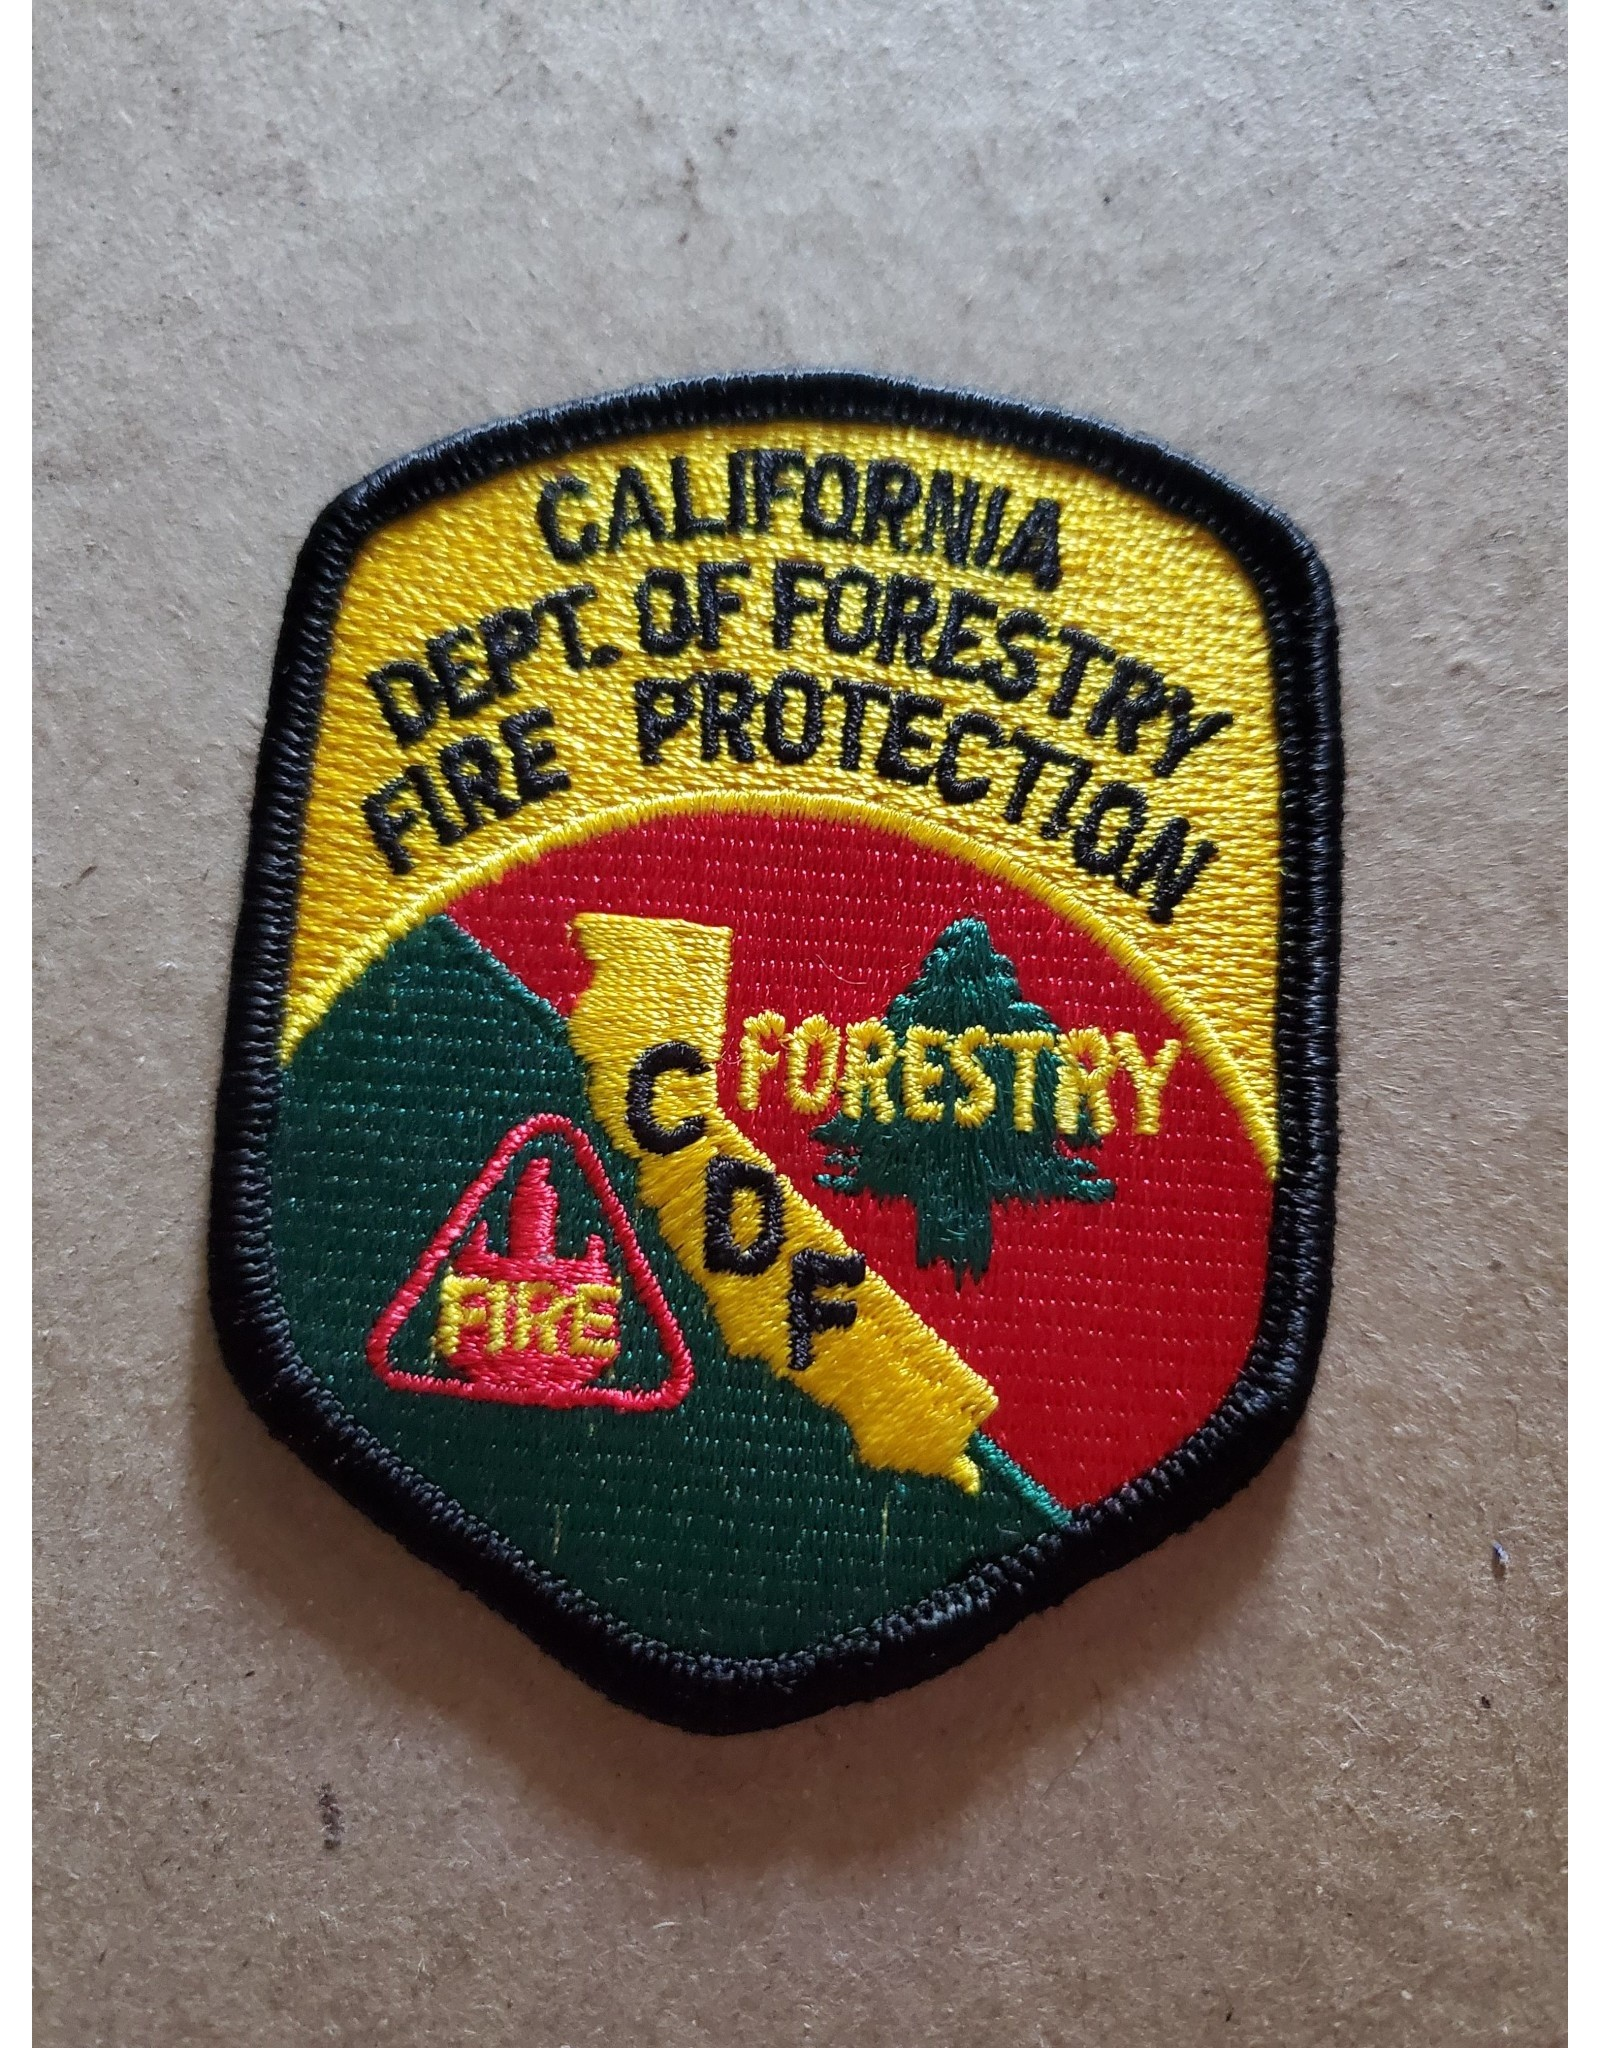 FWAM CAL Fire, patch